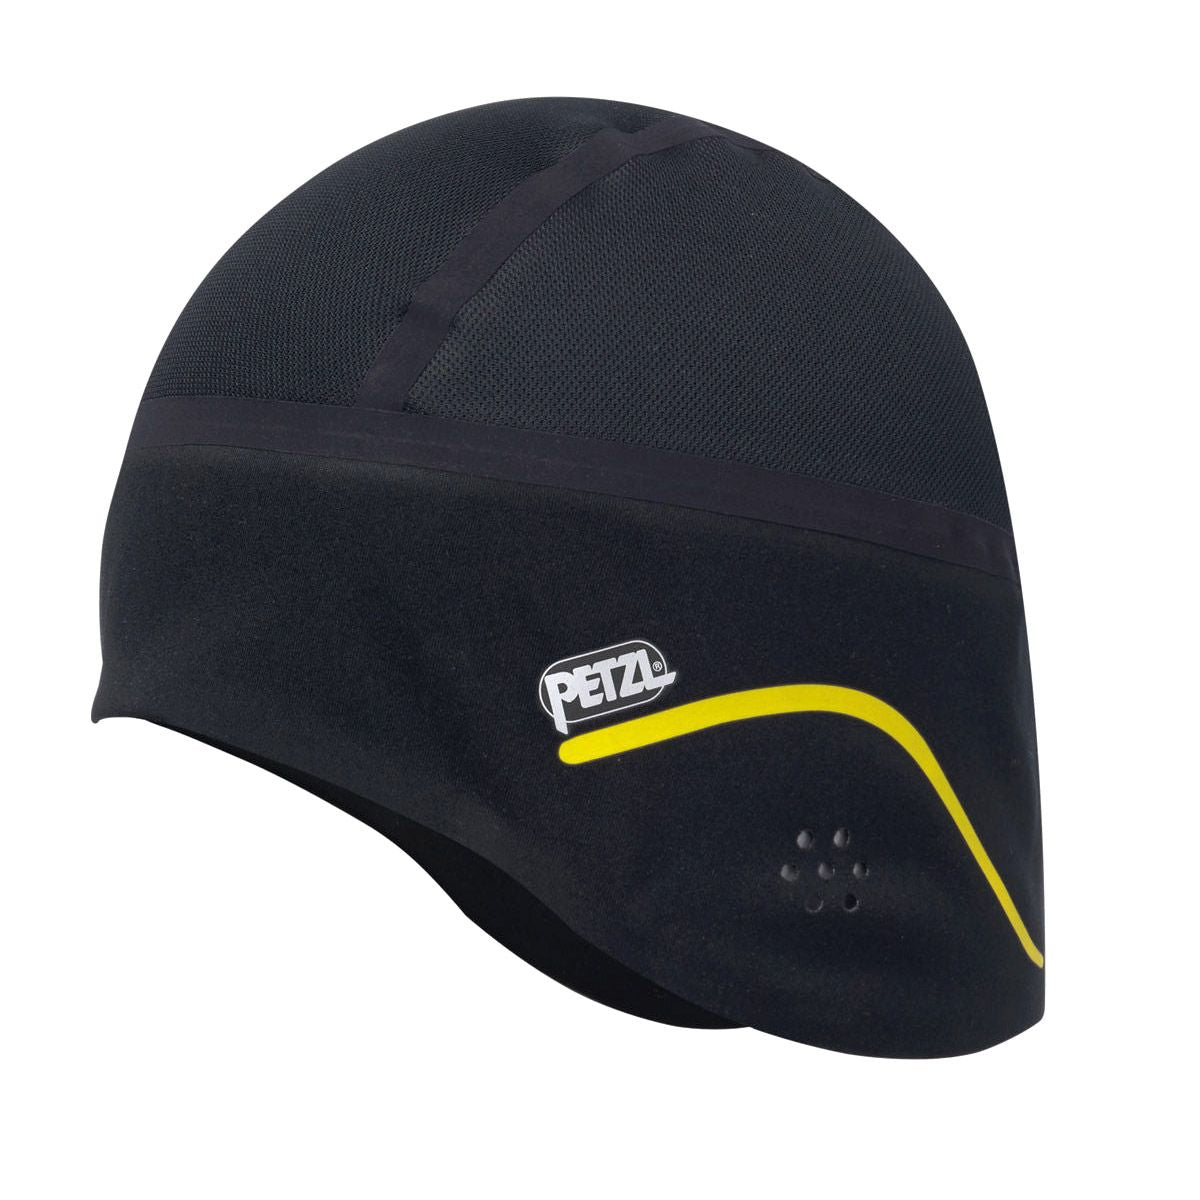 Petzl Headwear - Helmet Beanie for cold weather